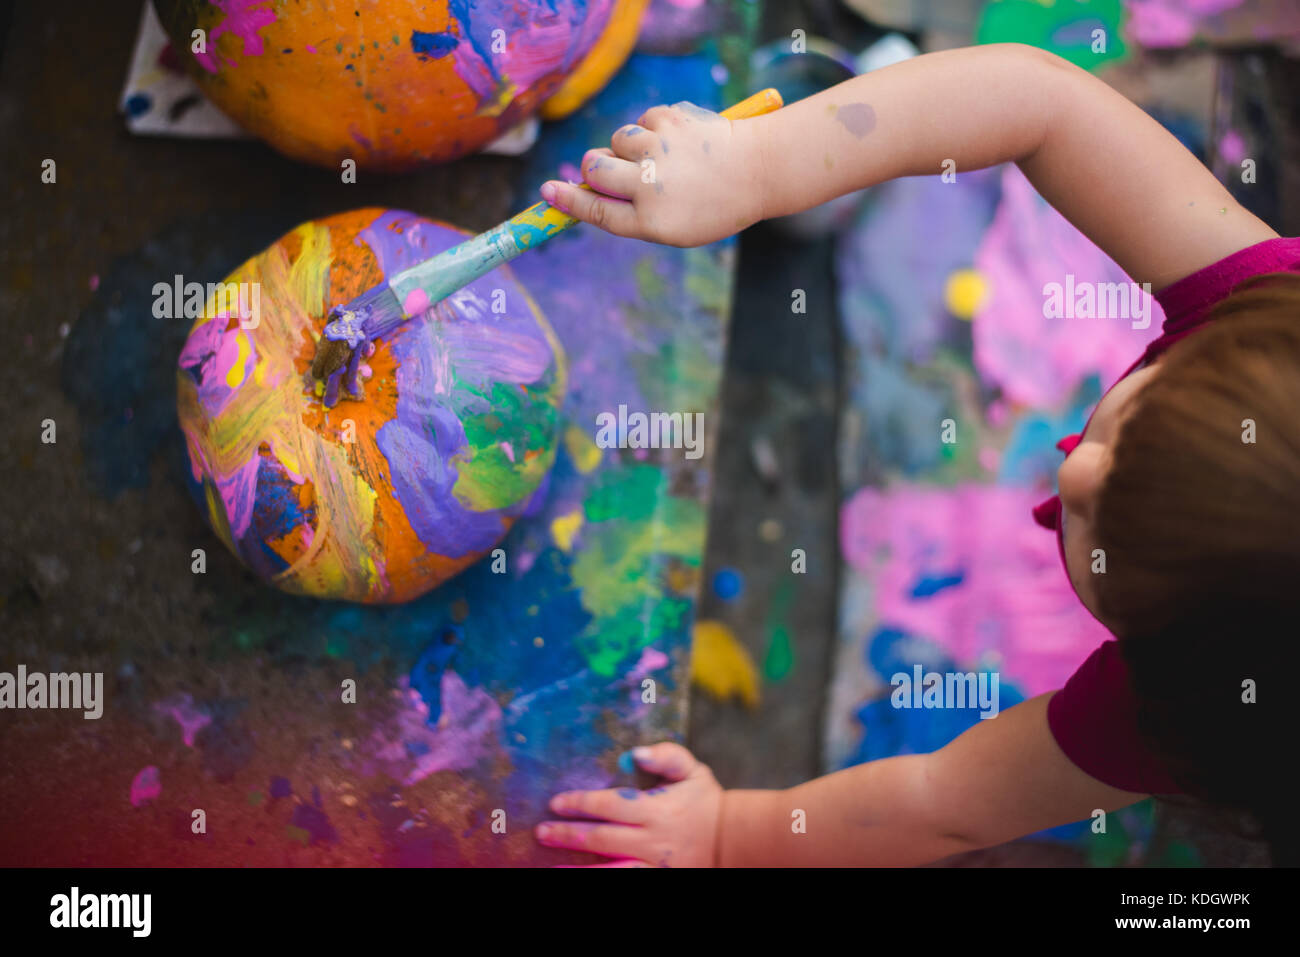 A little girl paints pumpkins during autumn activities. - Stock Image